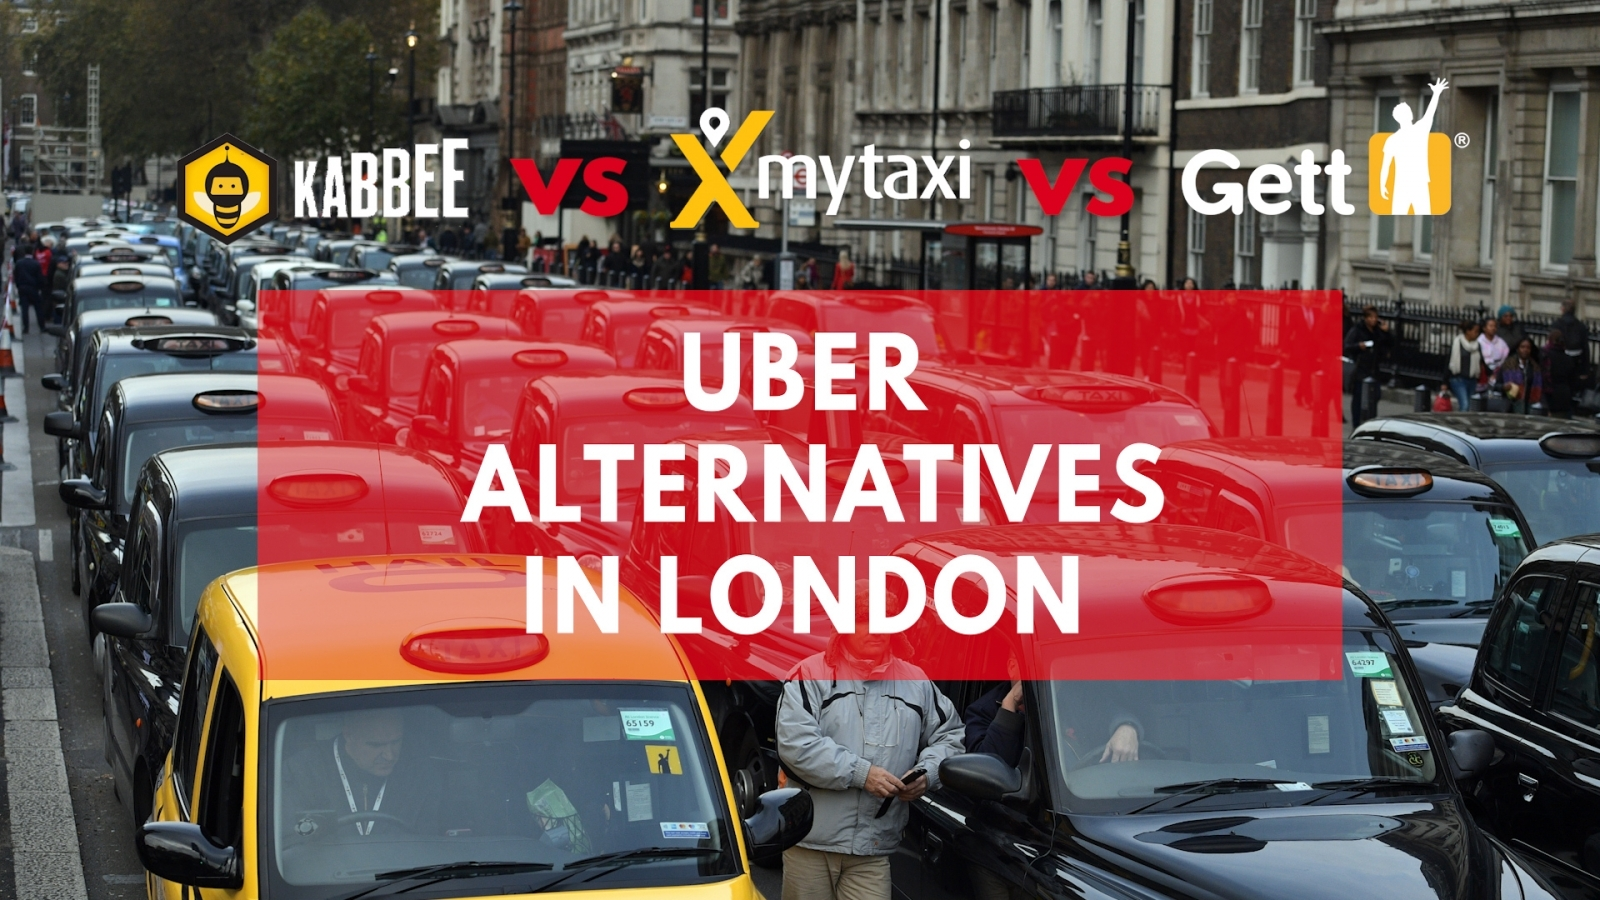 We tried to find out the best Uber alternative in London